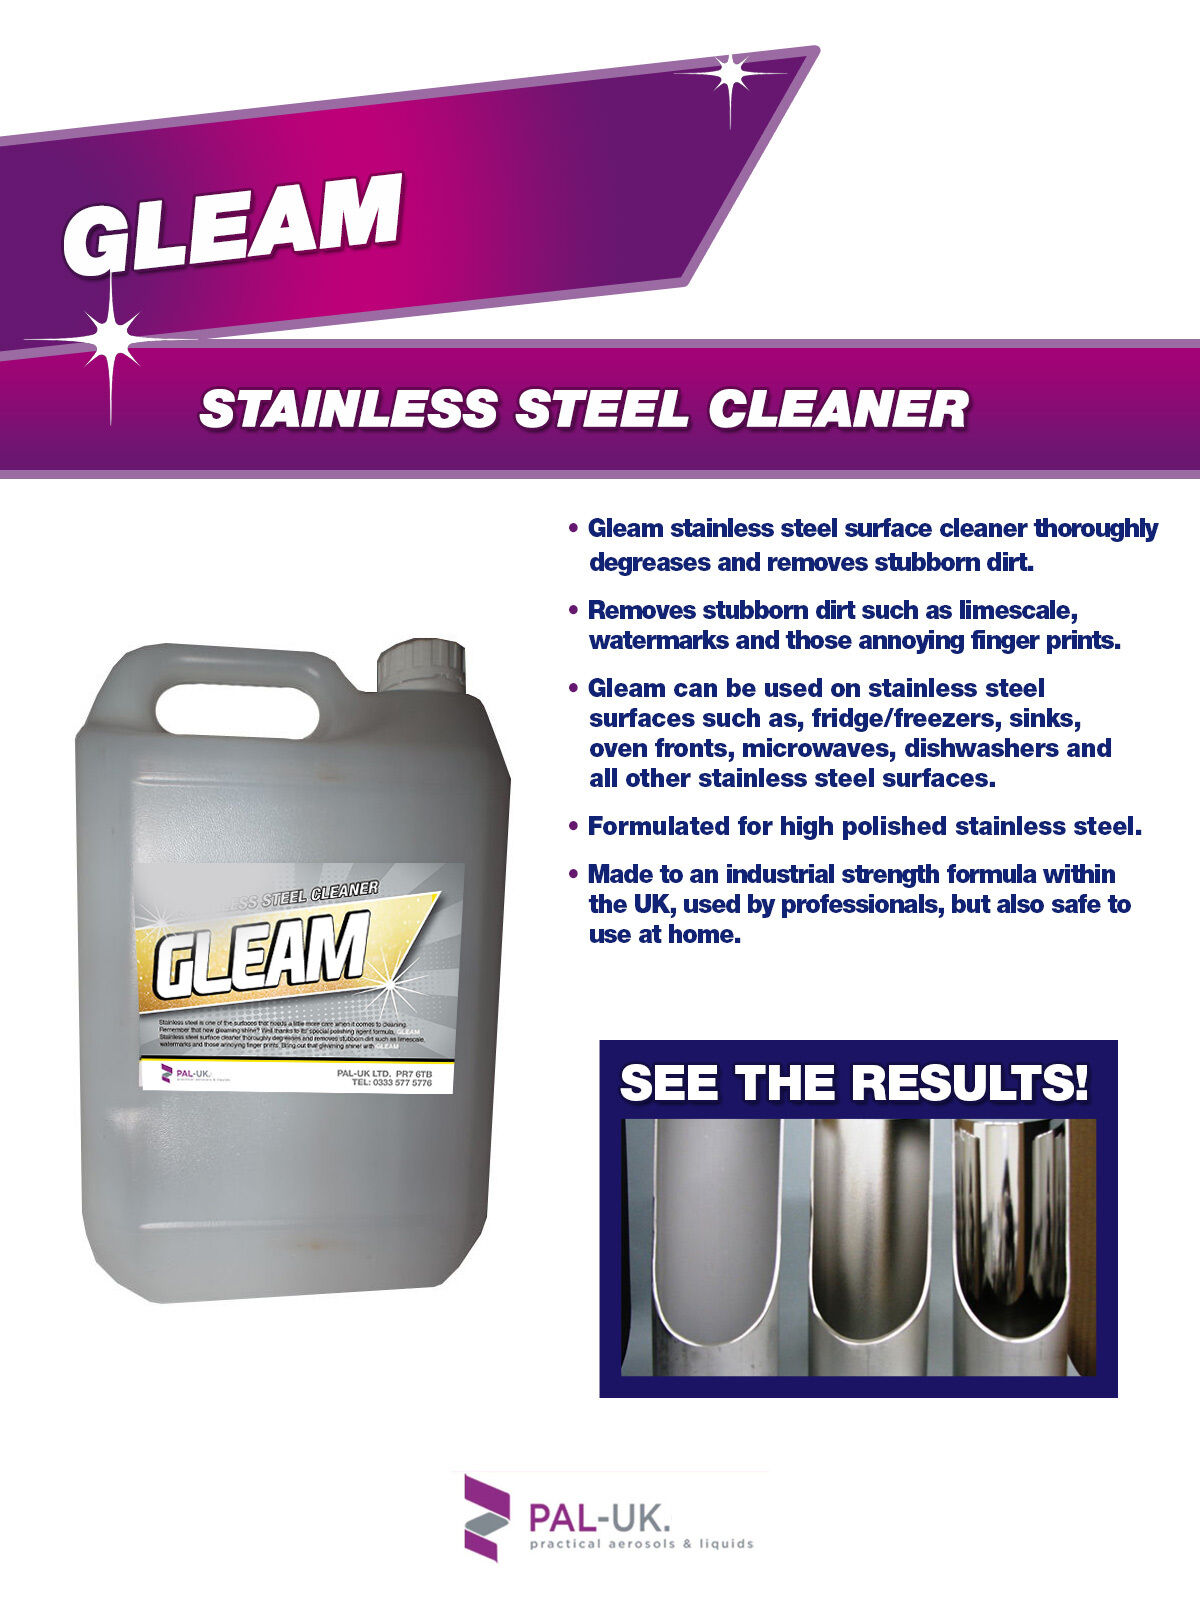 ALL STAINLESS STEEL KITCHEN APPLIANCE CLEANER - STUBBORN DIRT WATERMARKS REMOVER